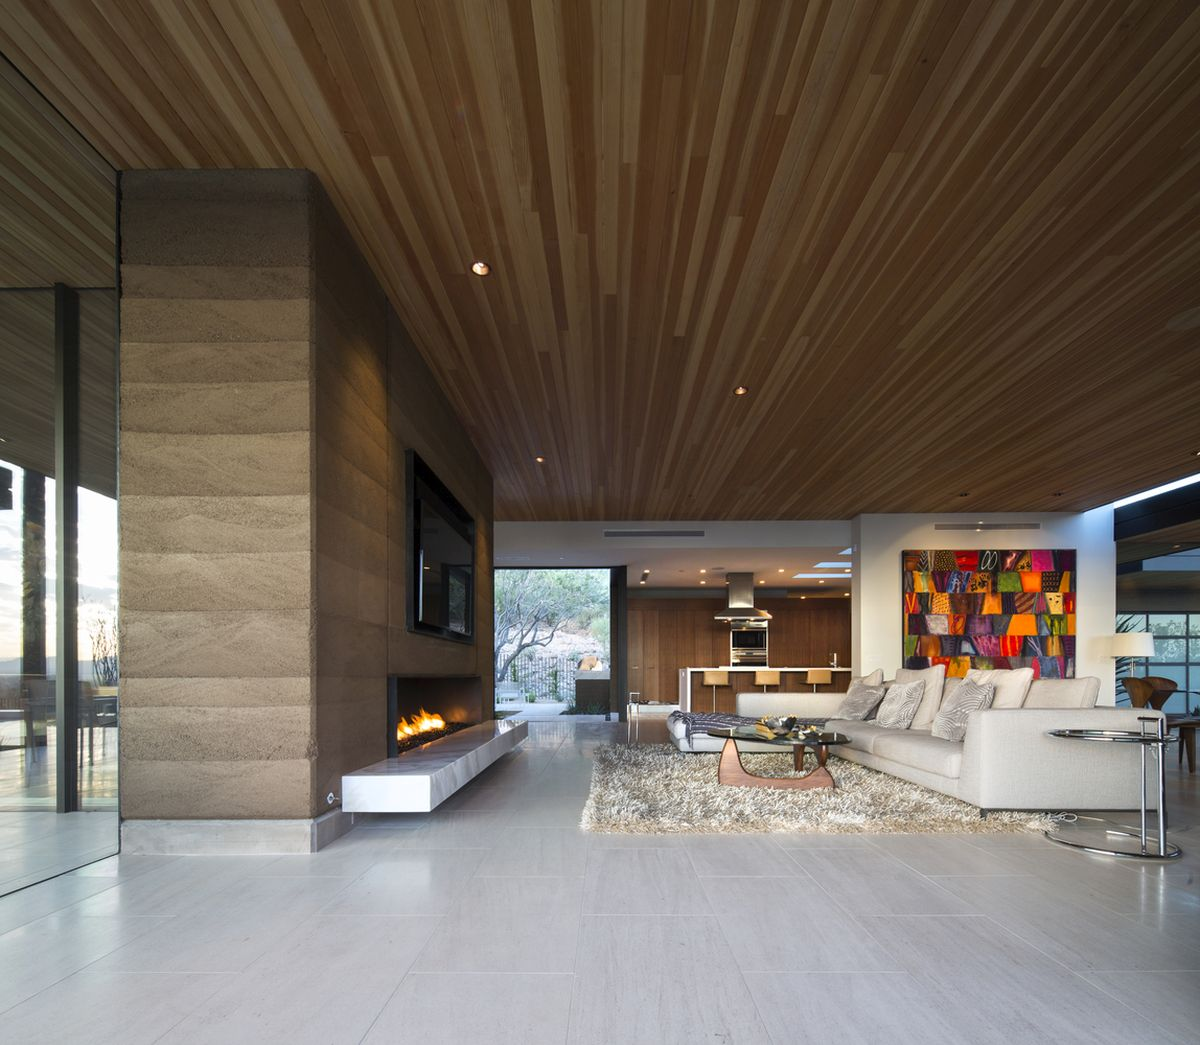 The interior design of the house is simple but also classy and elegant, featuring great attention to detail